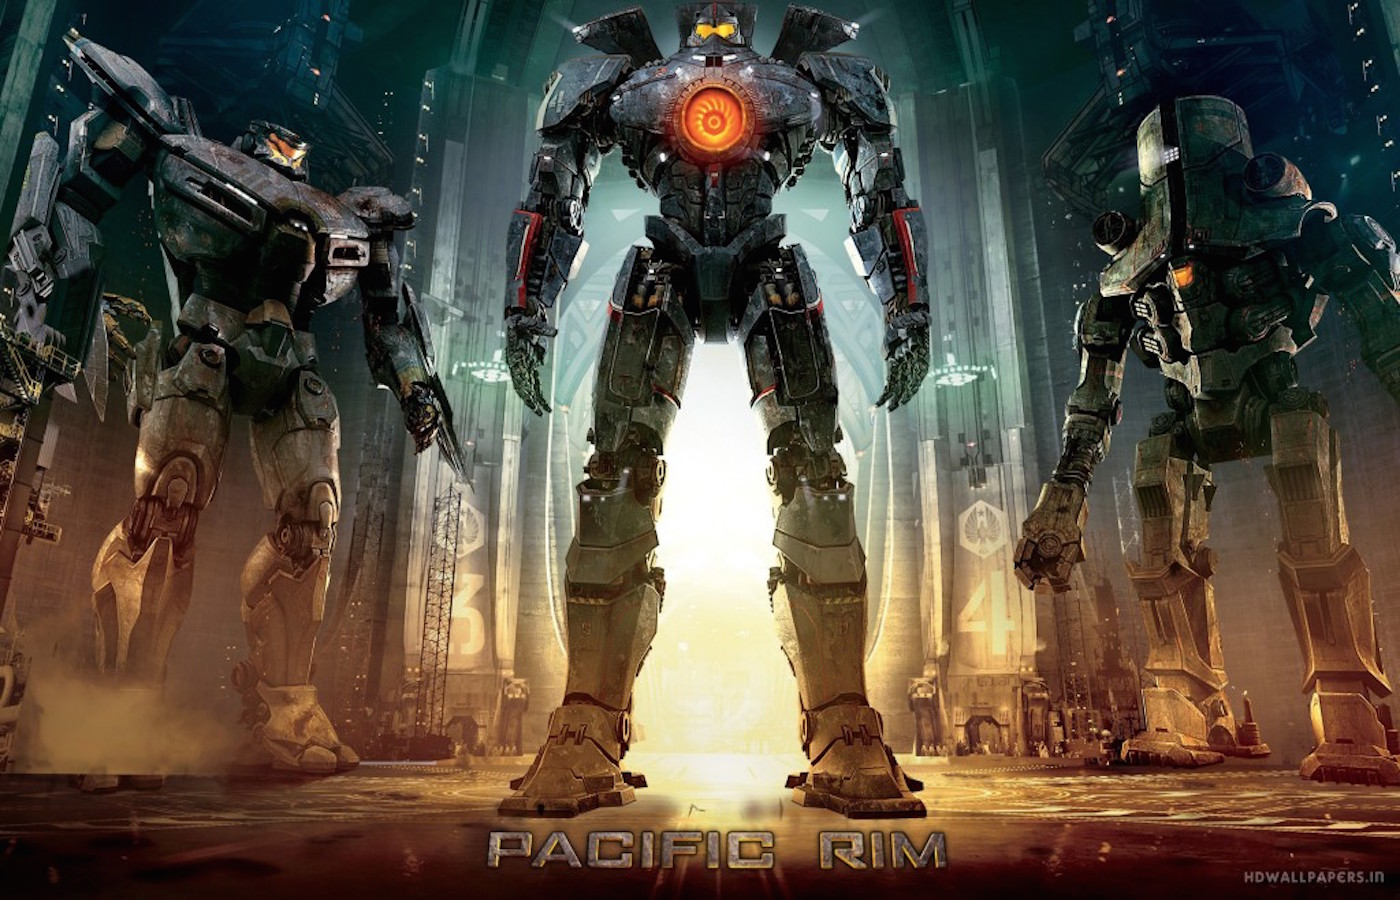 Pacific-Rim-Banner-HD-Wallpaper-1024x640.jpg